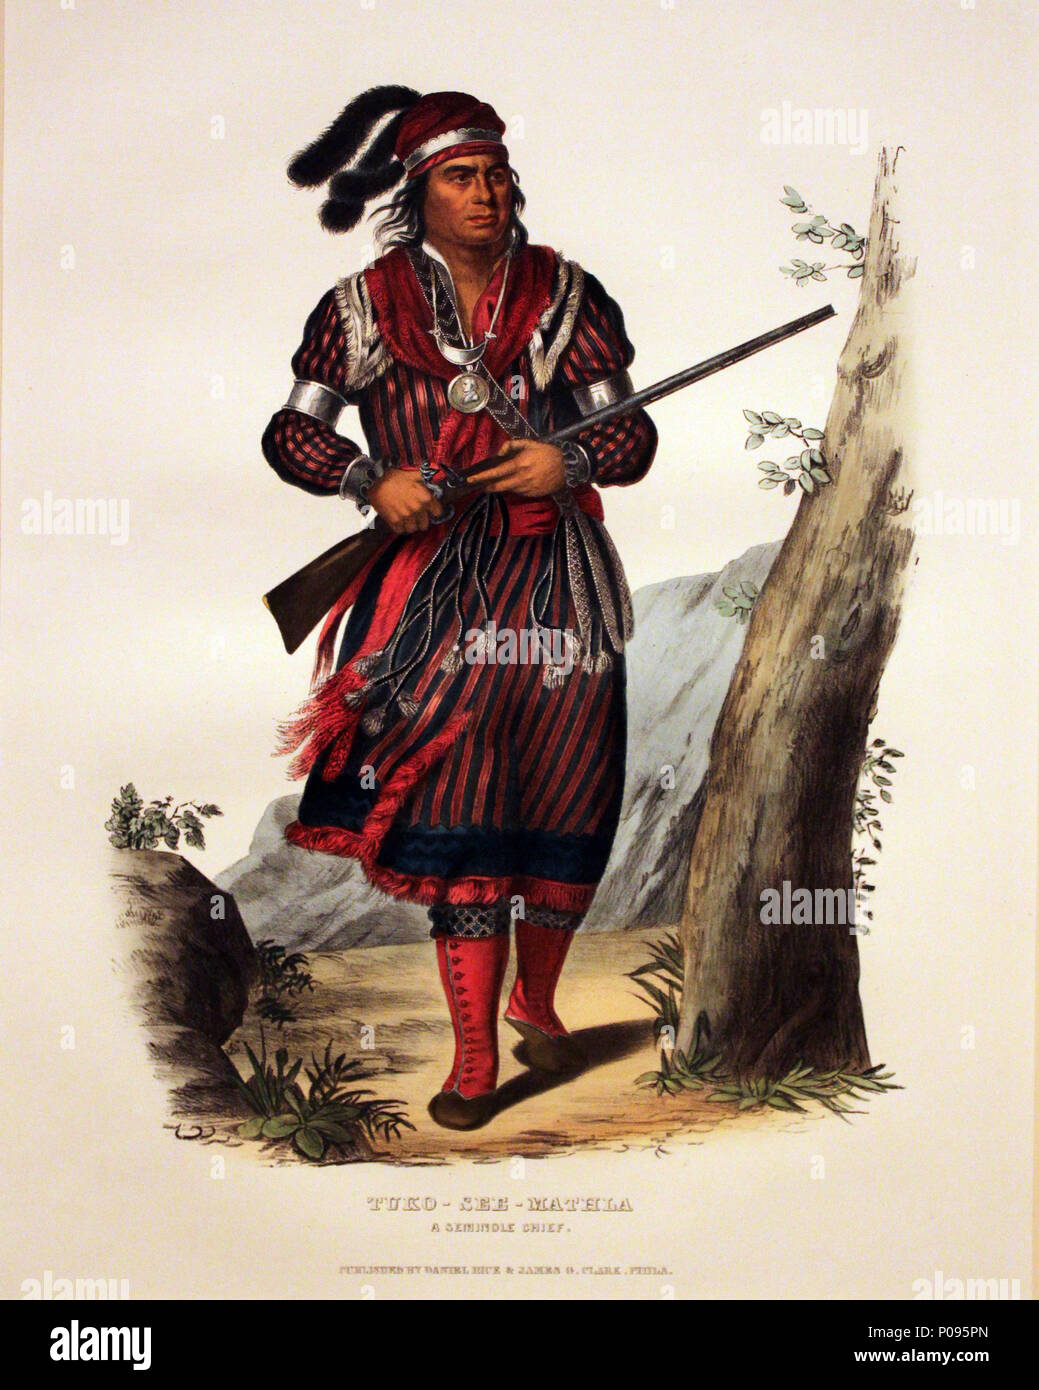 .  English: Seminole Chief Tuko-See-Mathla Deutsch: Seminolen-Häuptling Tuko-See-Mathla . 1833 20 1833 Catlin Tuko-See-Mathla, Seminole Chief anagoria Stock Photo